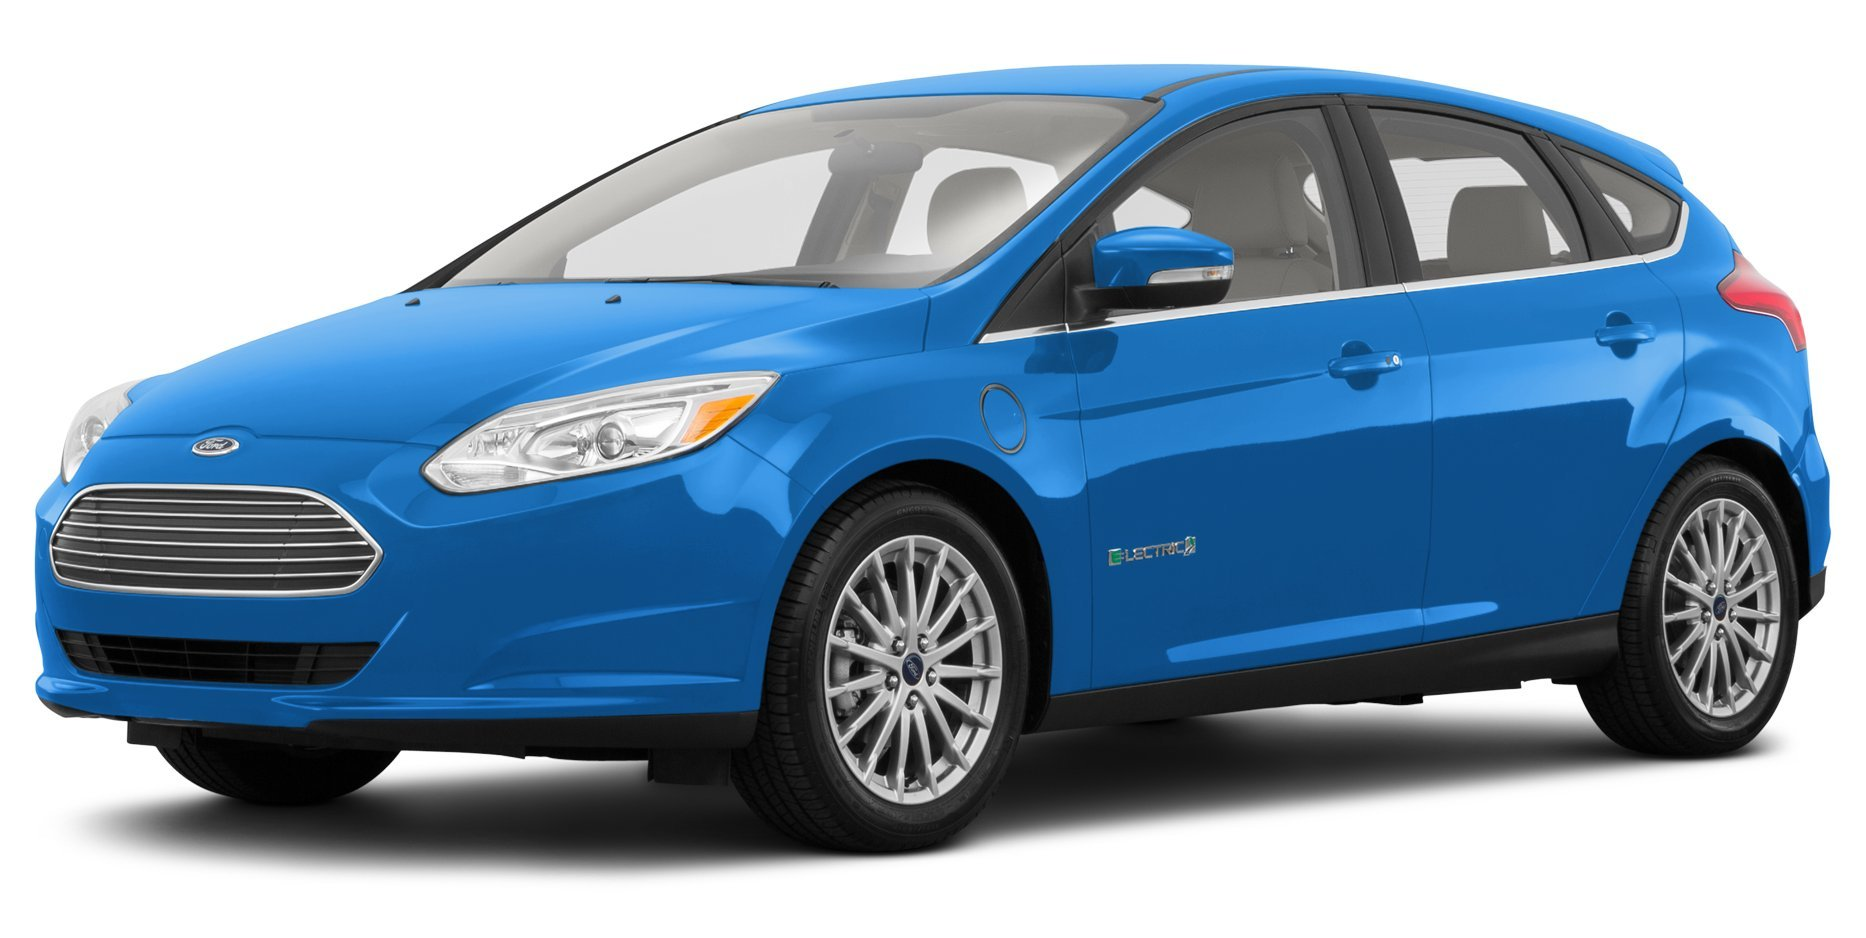 2016 ford focus reviews images and specs vehicles. Black Bedroom Furniture Sets. Home Design Ideas